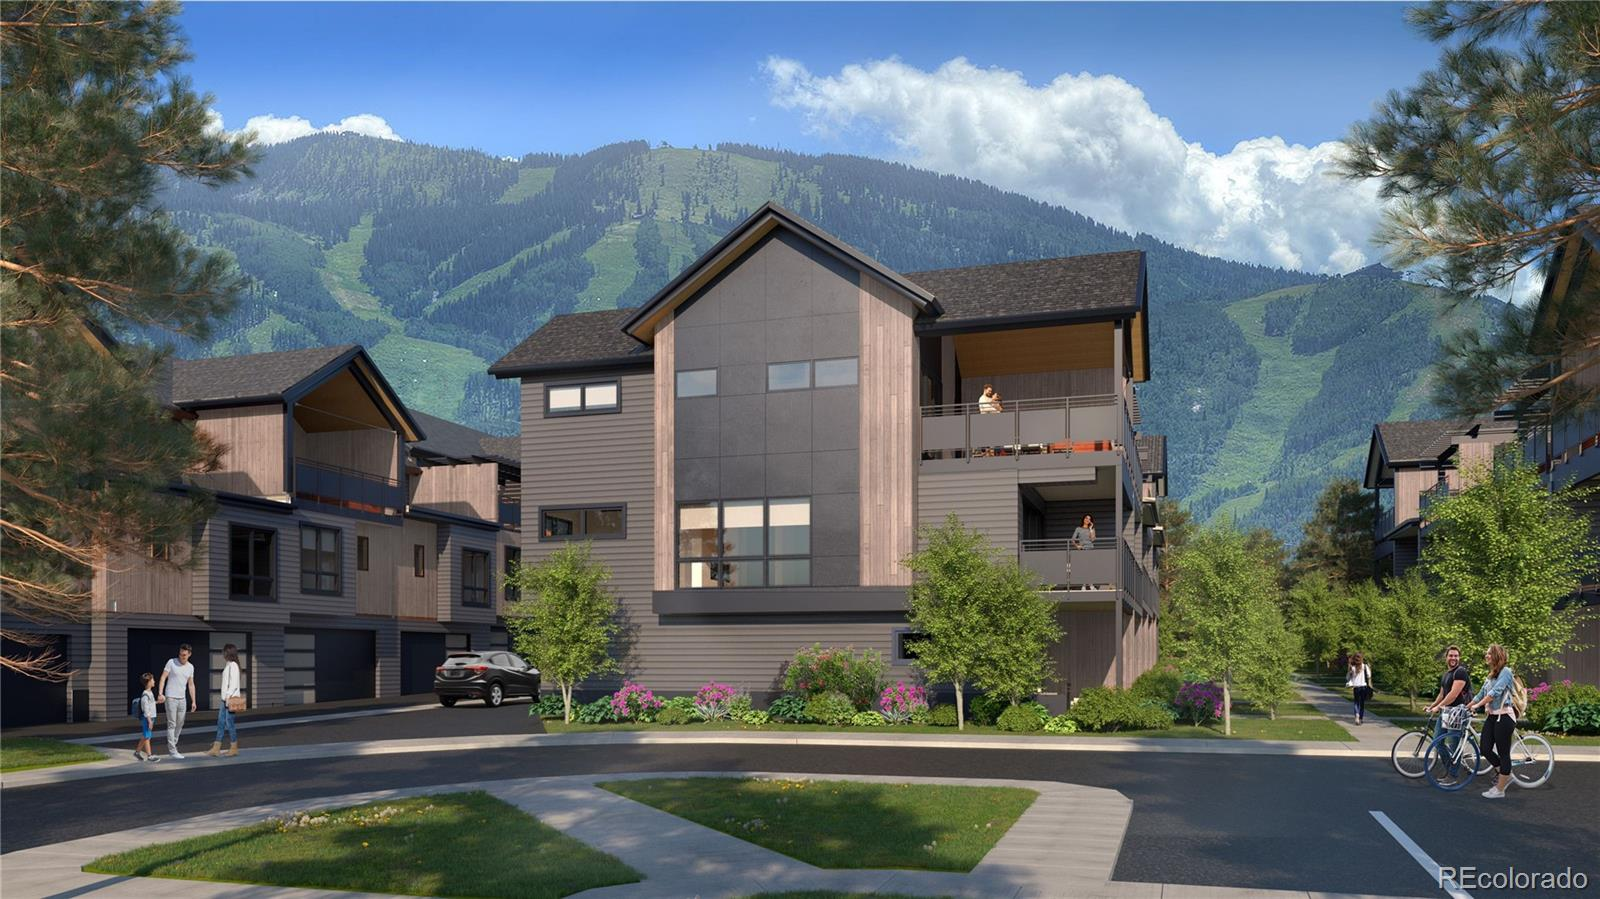 MLS# 8256549 - 3 - 2560 Cattle Kate Circle #F, Steamboat Springs, CO 80487